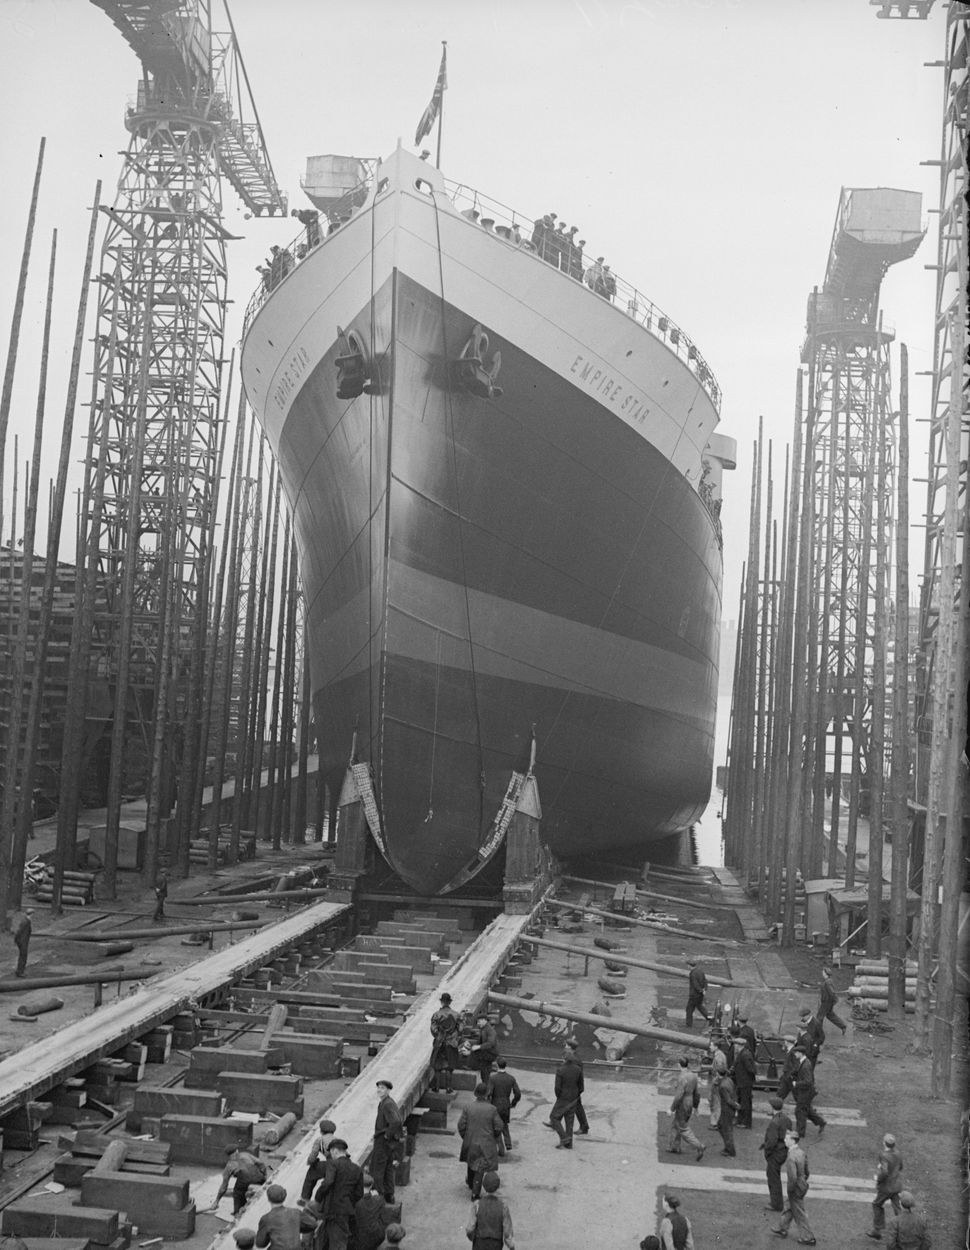 The launch of the Empire Star at a shipyard in Belfast on Sep. 26, 1935. The ship was lost in 1942 while carrying WWII ammuni